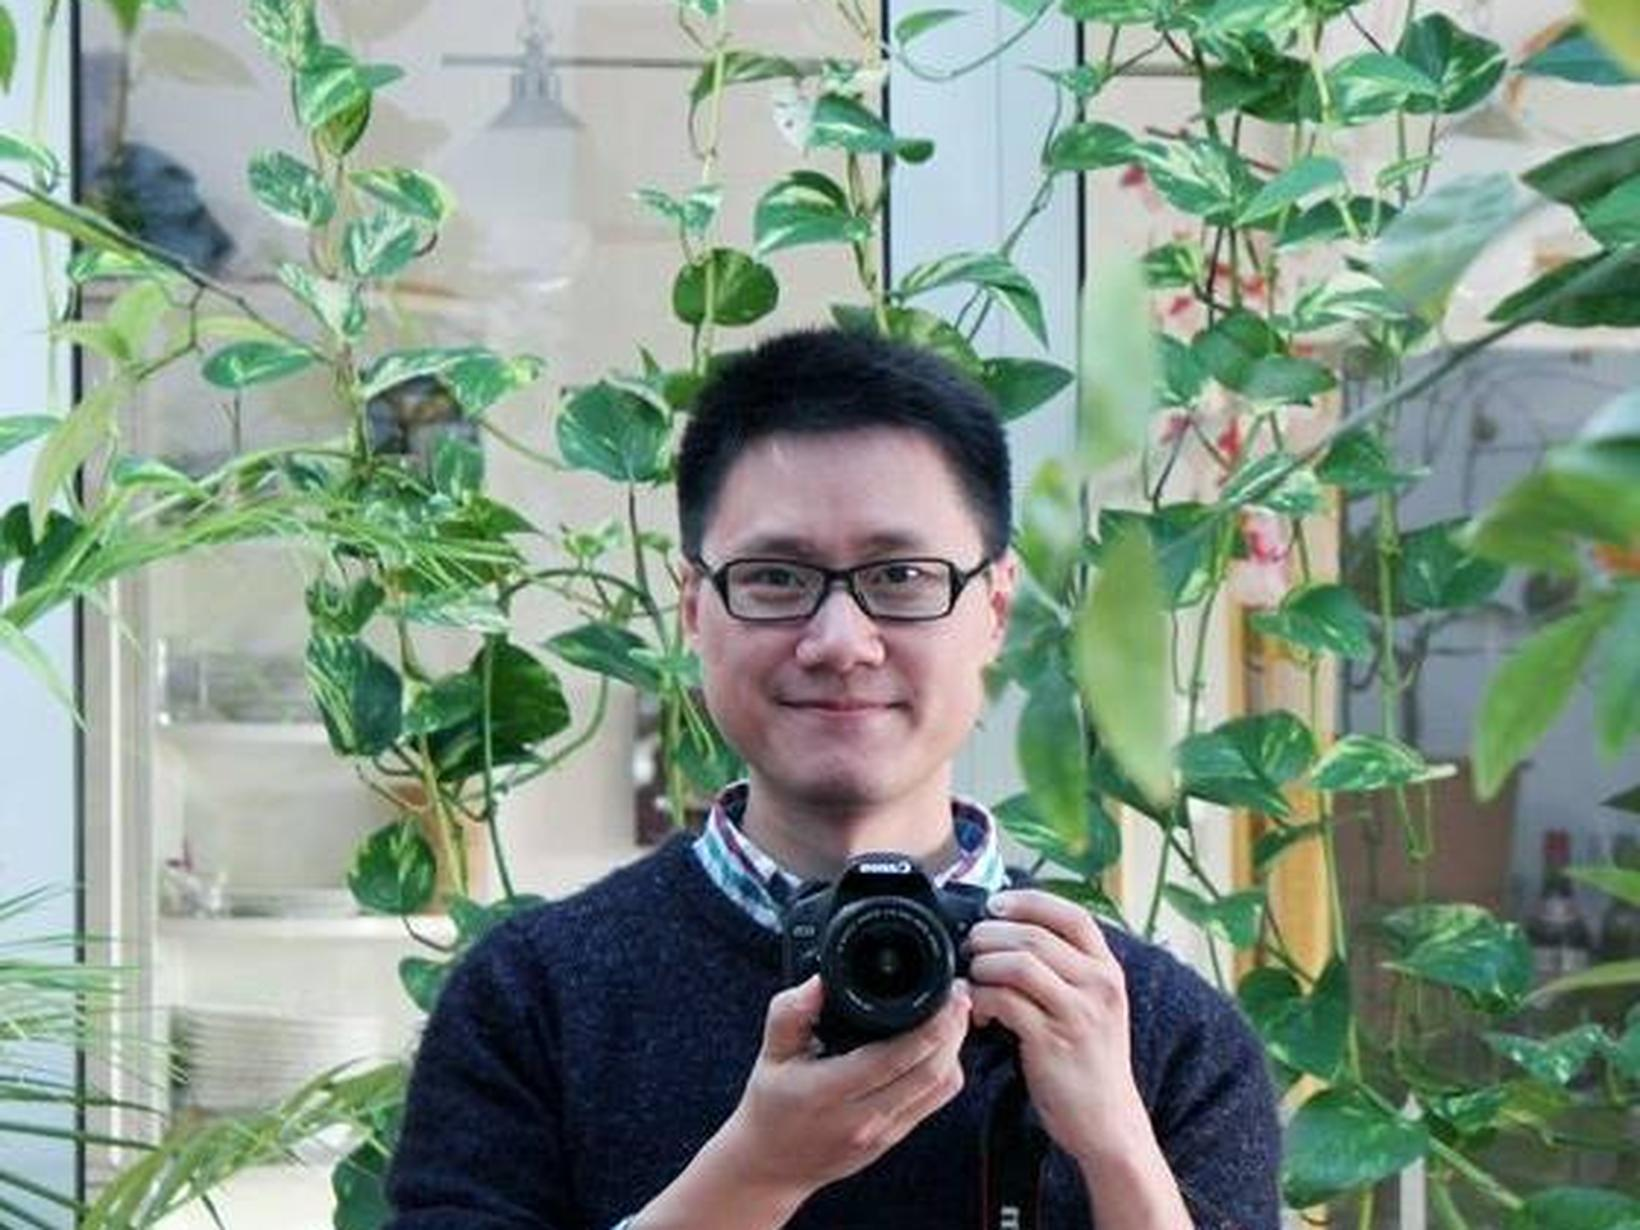 Min from Hangzhou, China